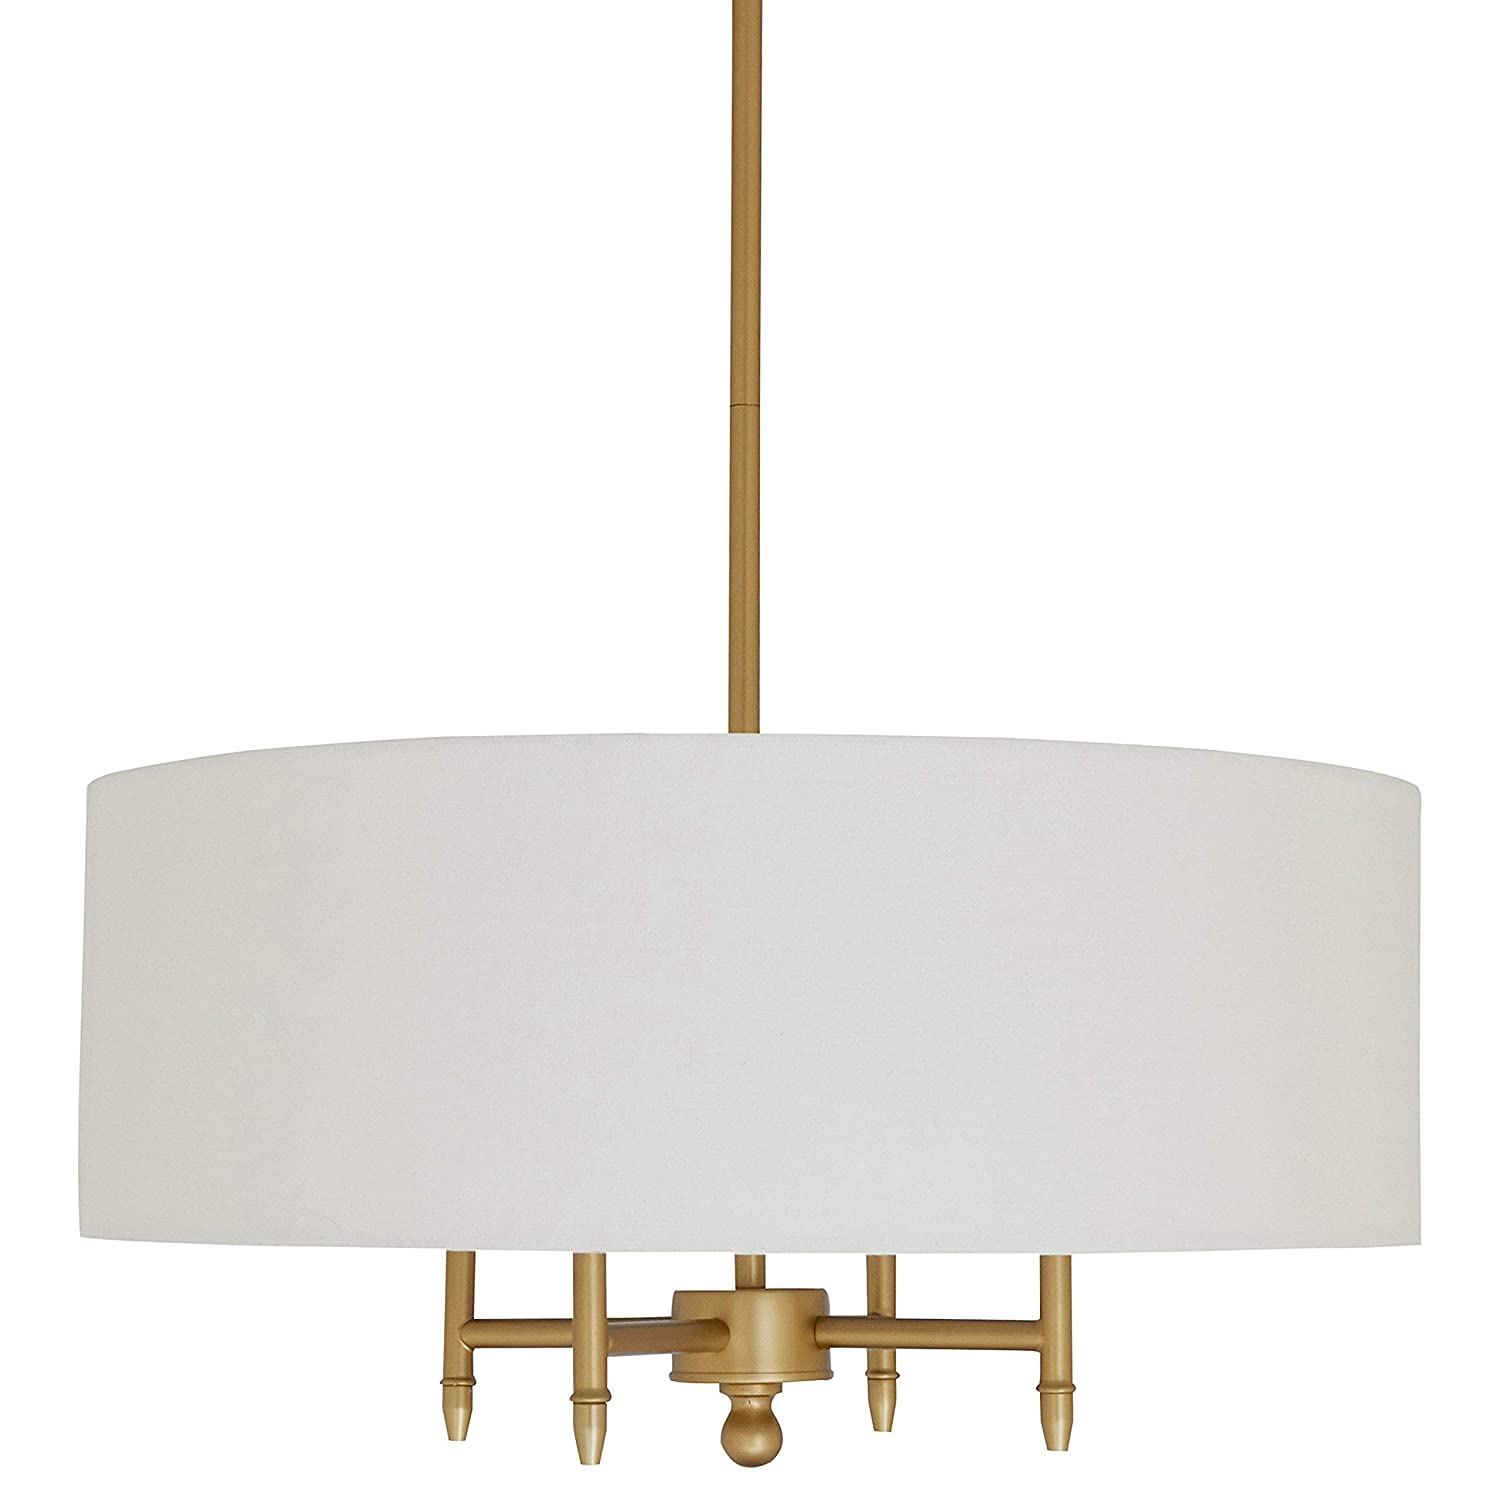 "Stone & Beam Classic 4-Arm Gold Chandelier, 42""H, White Shade"